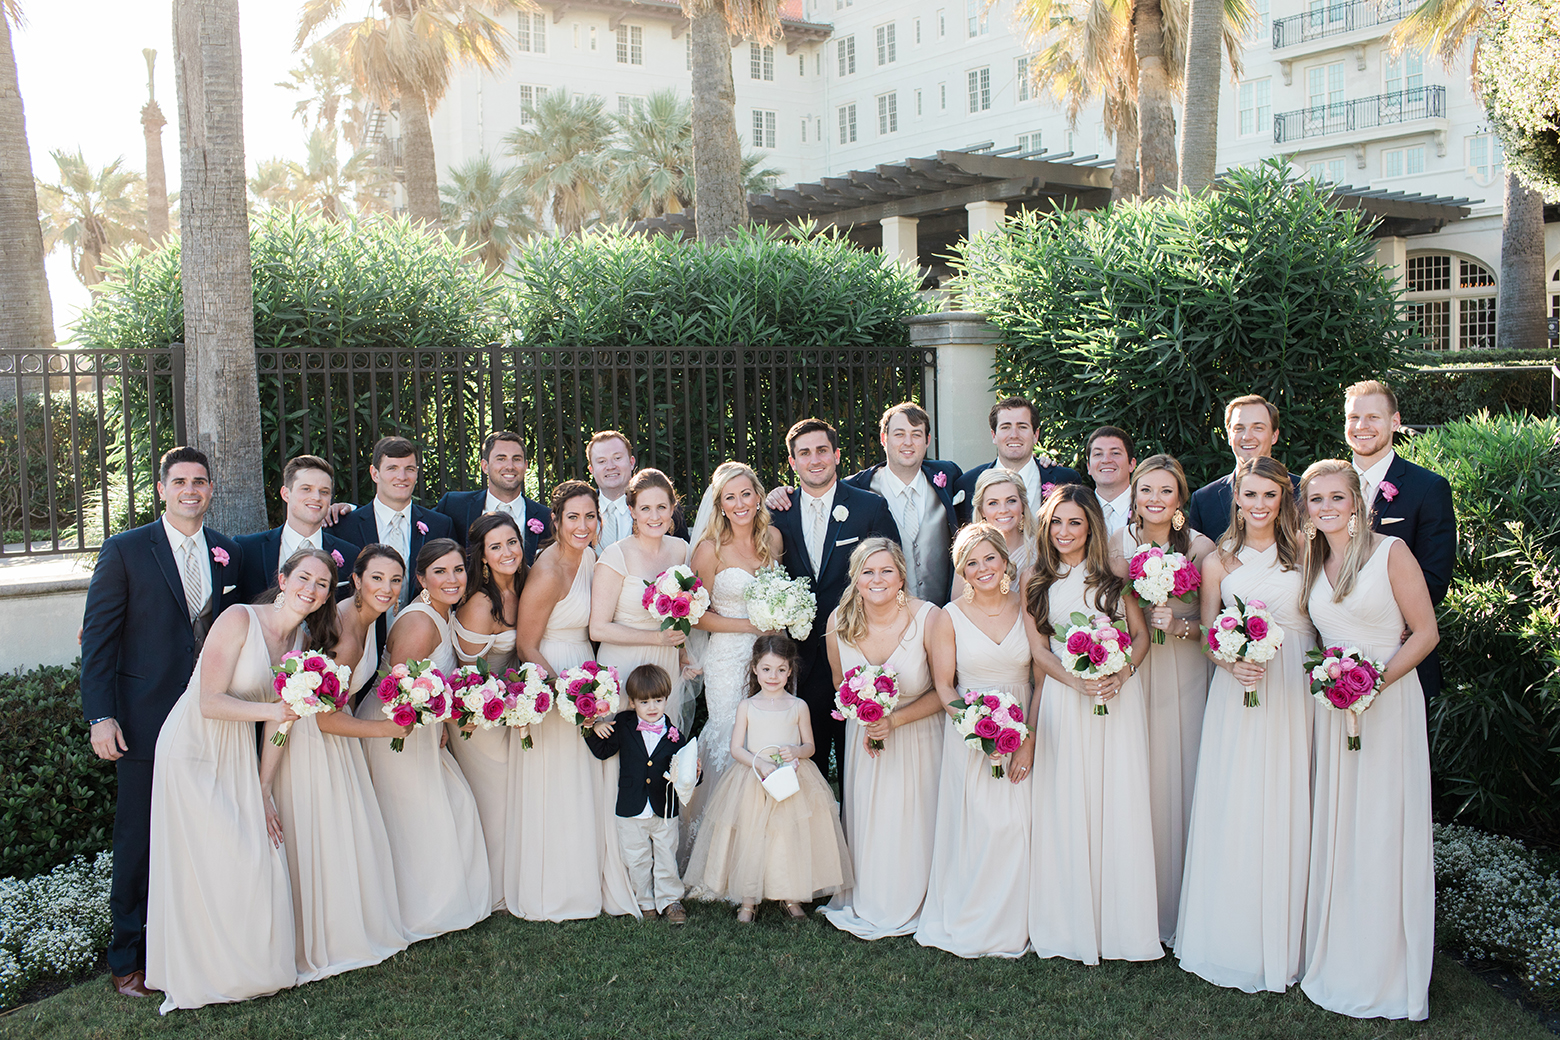 houston wedding, bridal party, bridesmaids, groomsmen, hotel galvez & spa